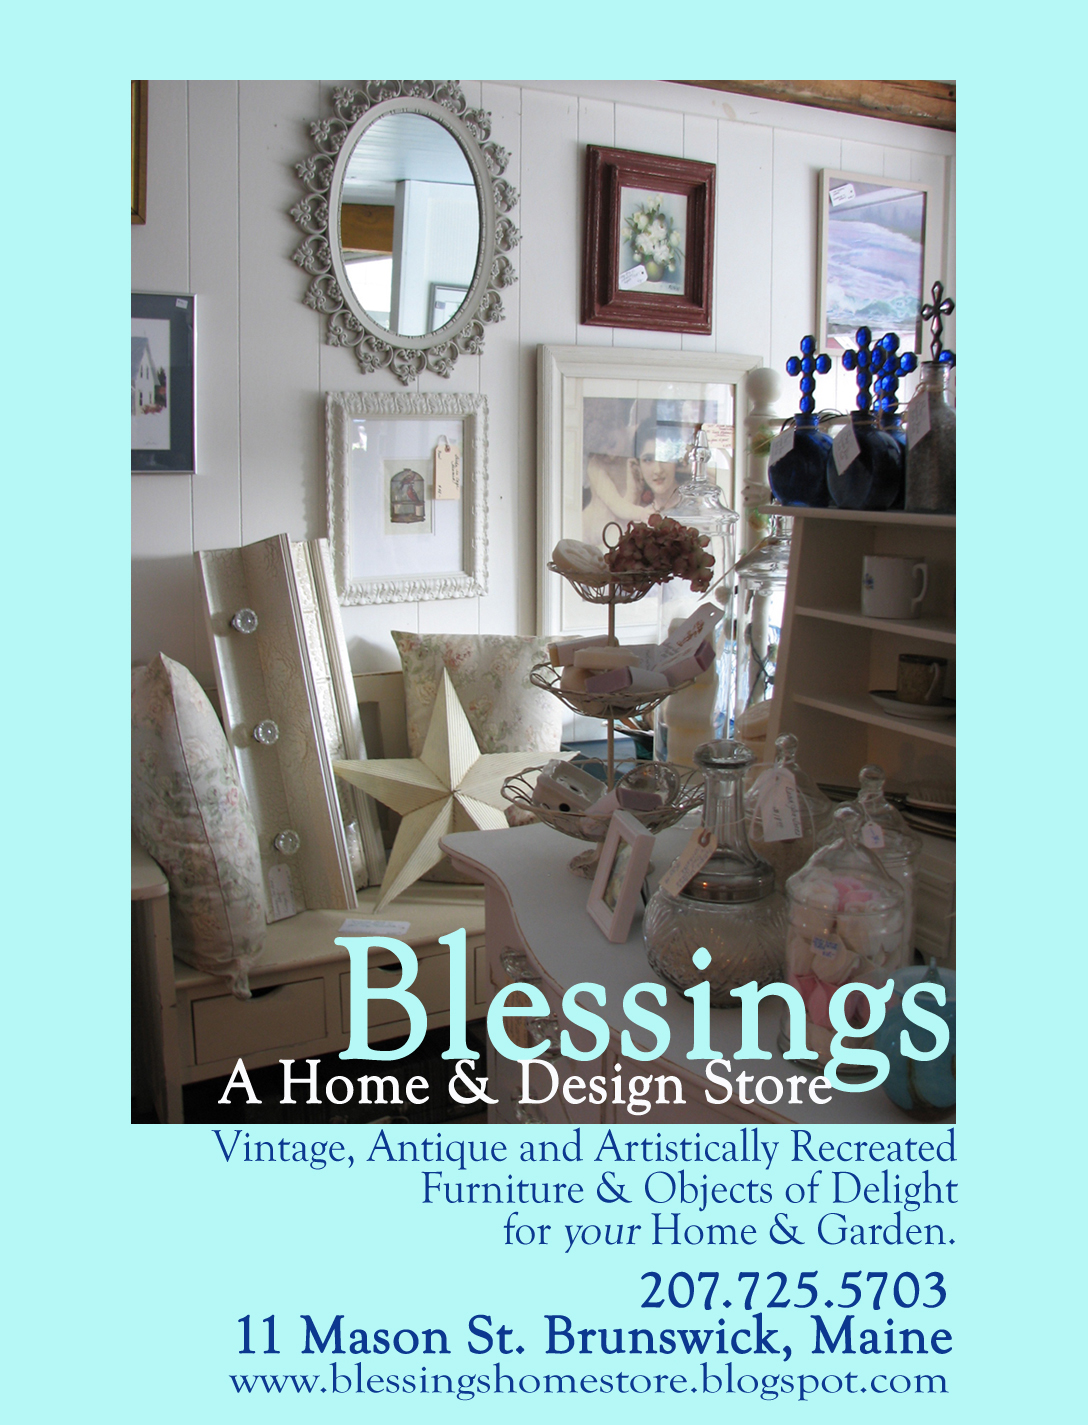 Blessings Home Store